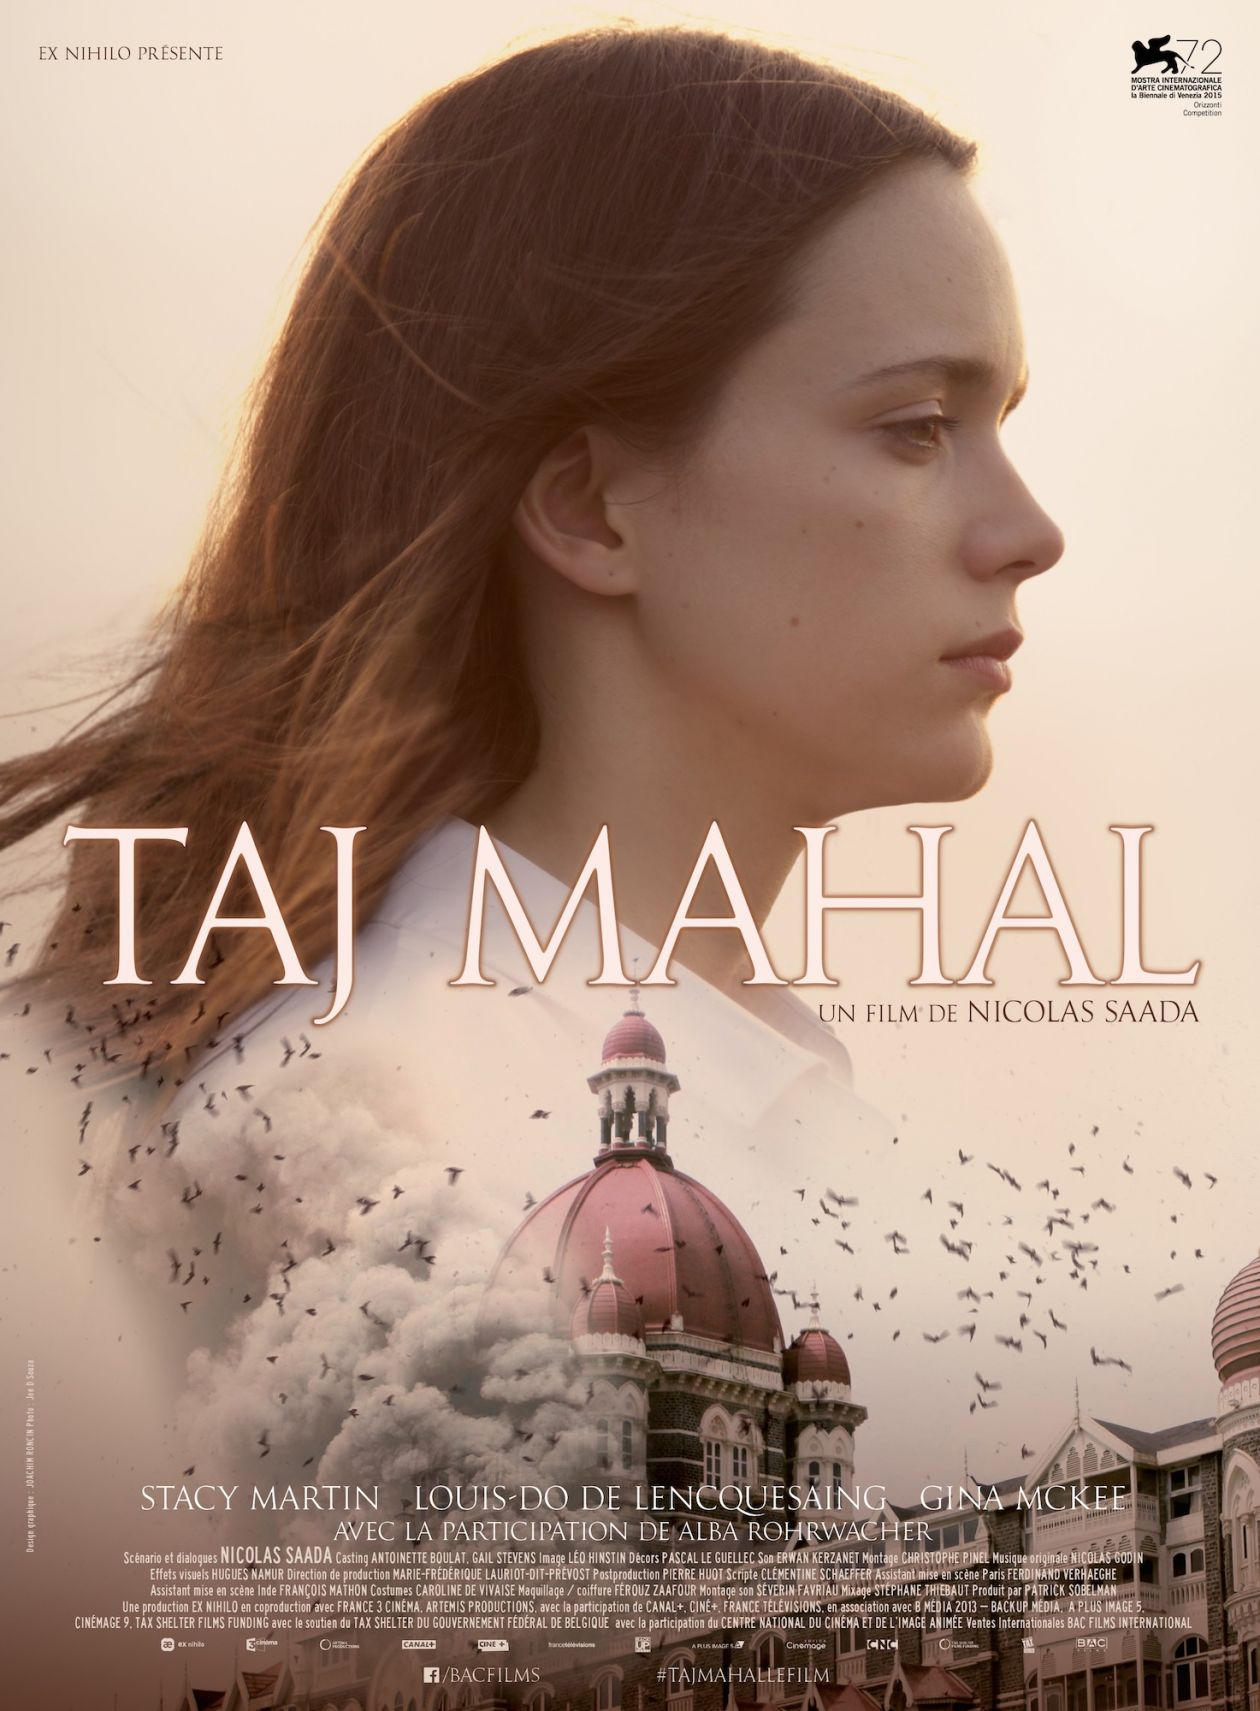 Stacy Martin | Taj Mahal | Nicolas Saada 2015 / MOVIE POSTER / AFFICHE DU FILM